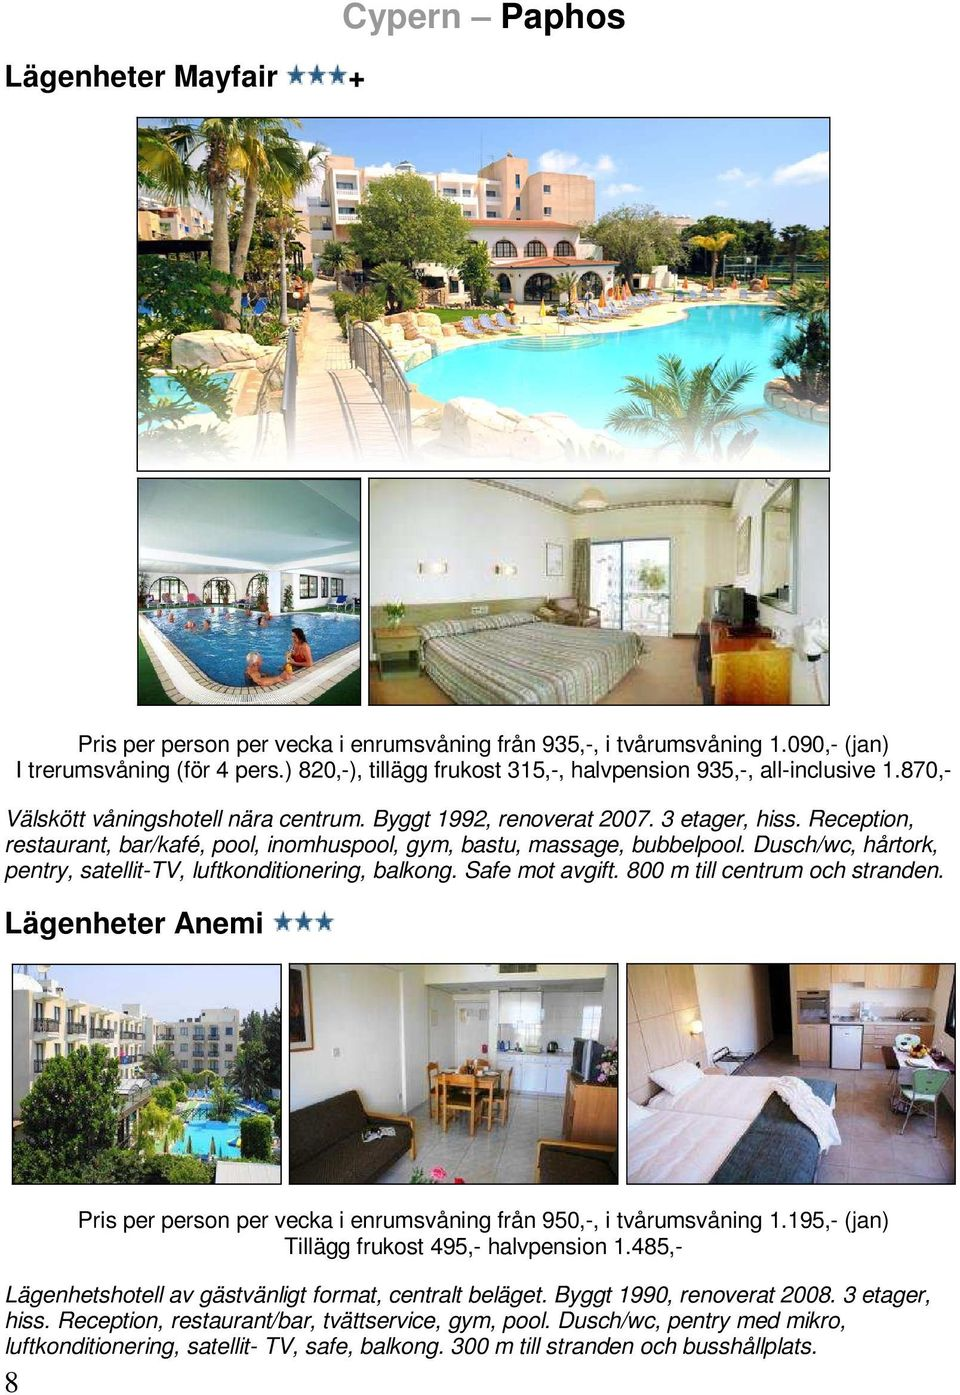 Reception, restaurant, bar/kafé, pool, inomhuspool, gym, bastu, massage, bubbelpool. Dusch/wc, hårtork, pentry, satellit-tv, luftkonditionering, balkong. Safe mot avgift.